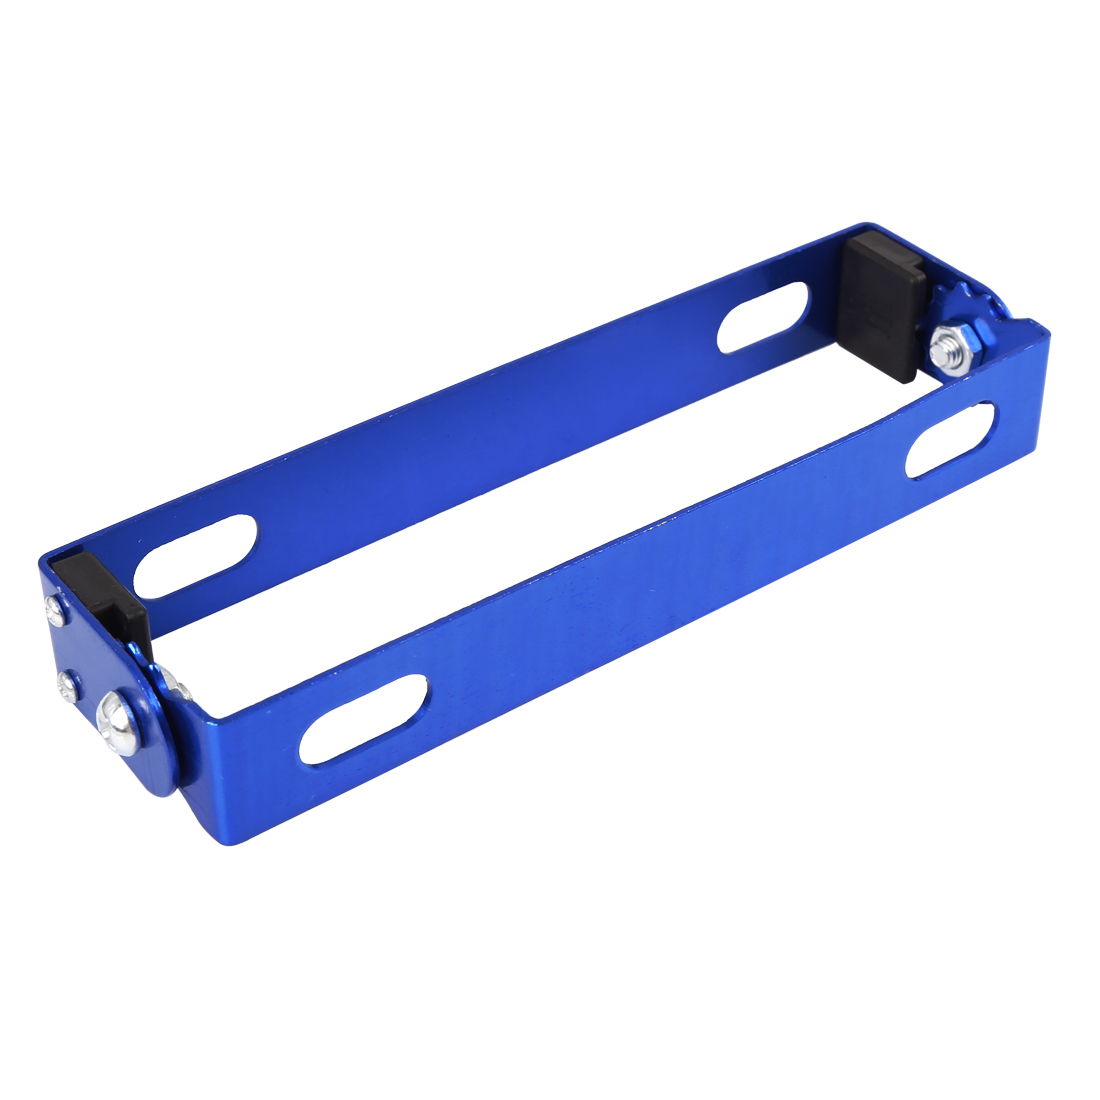 Motorcycle Adjustable Angle Blue Metal License Plate Holder Bracket